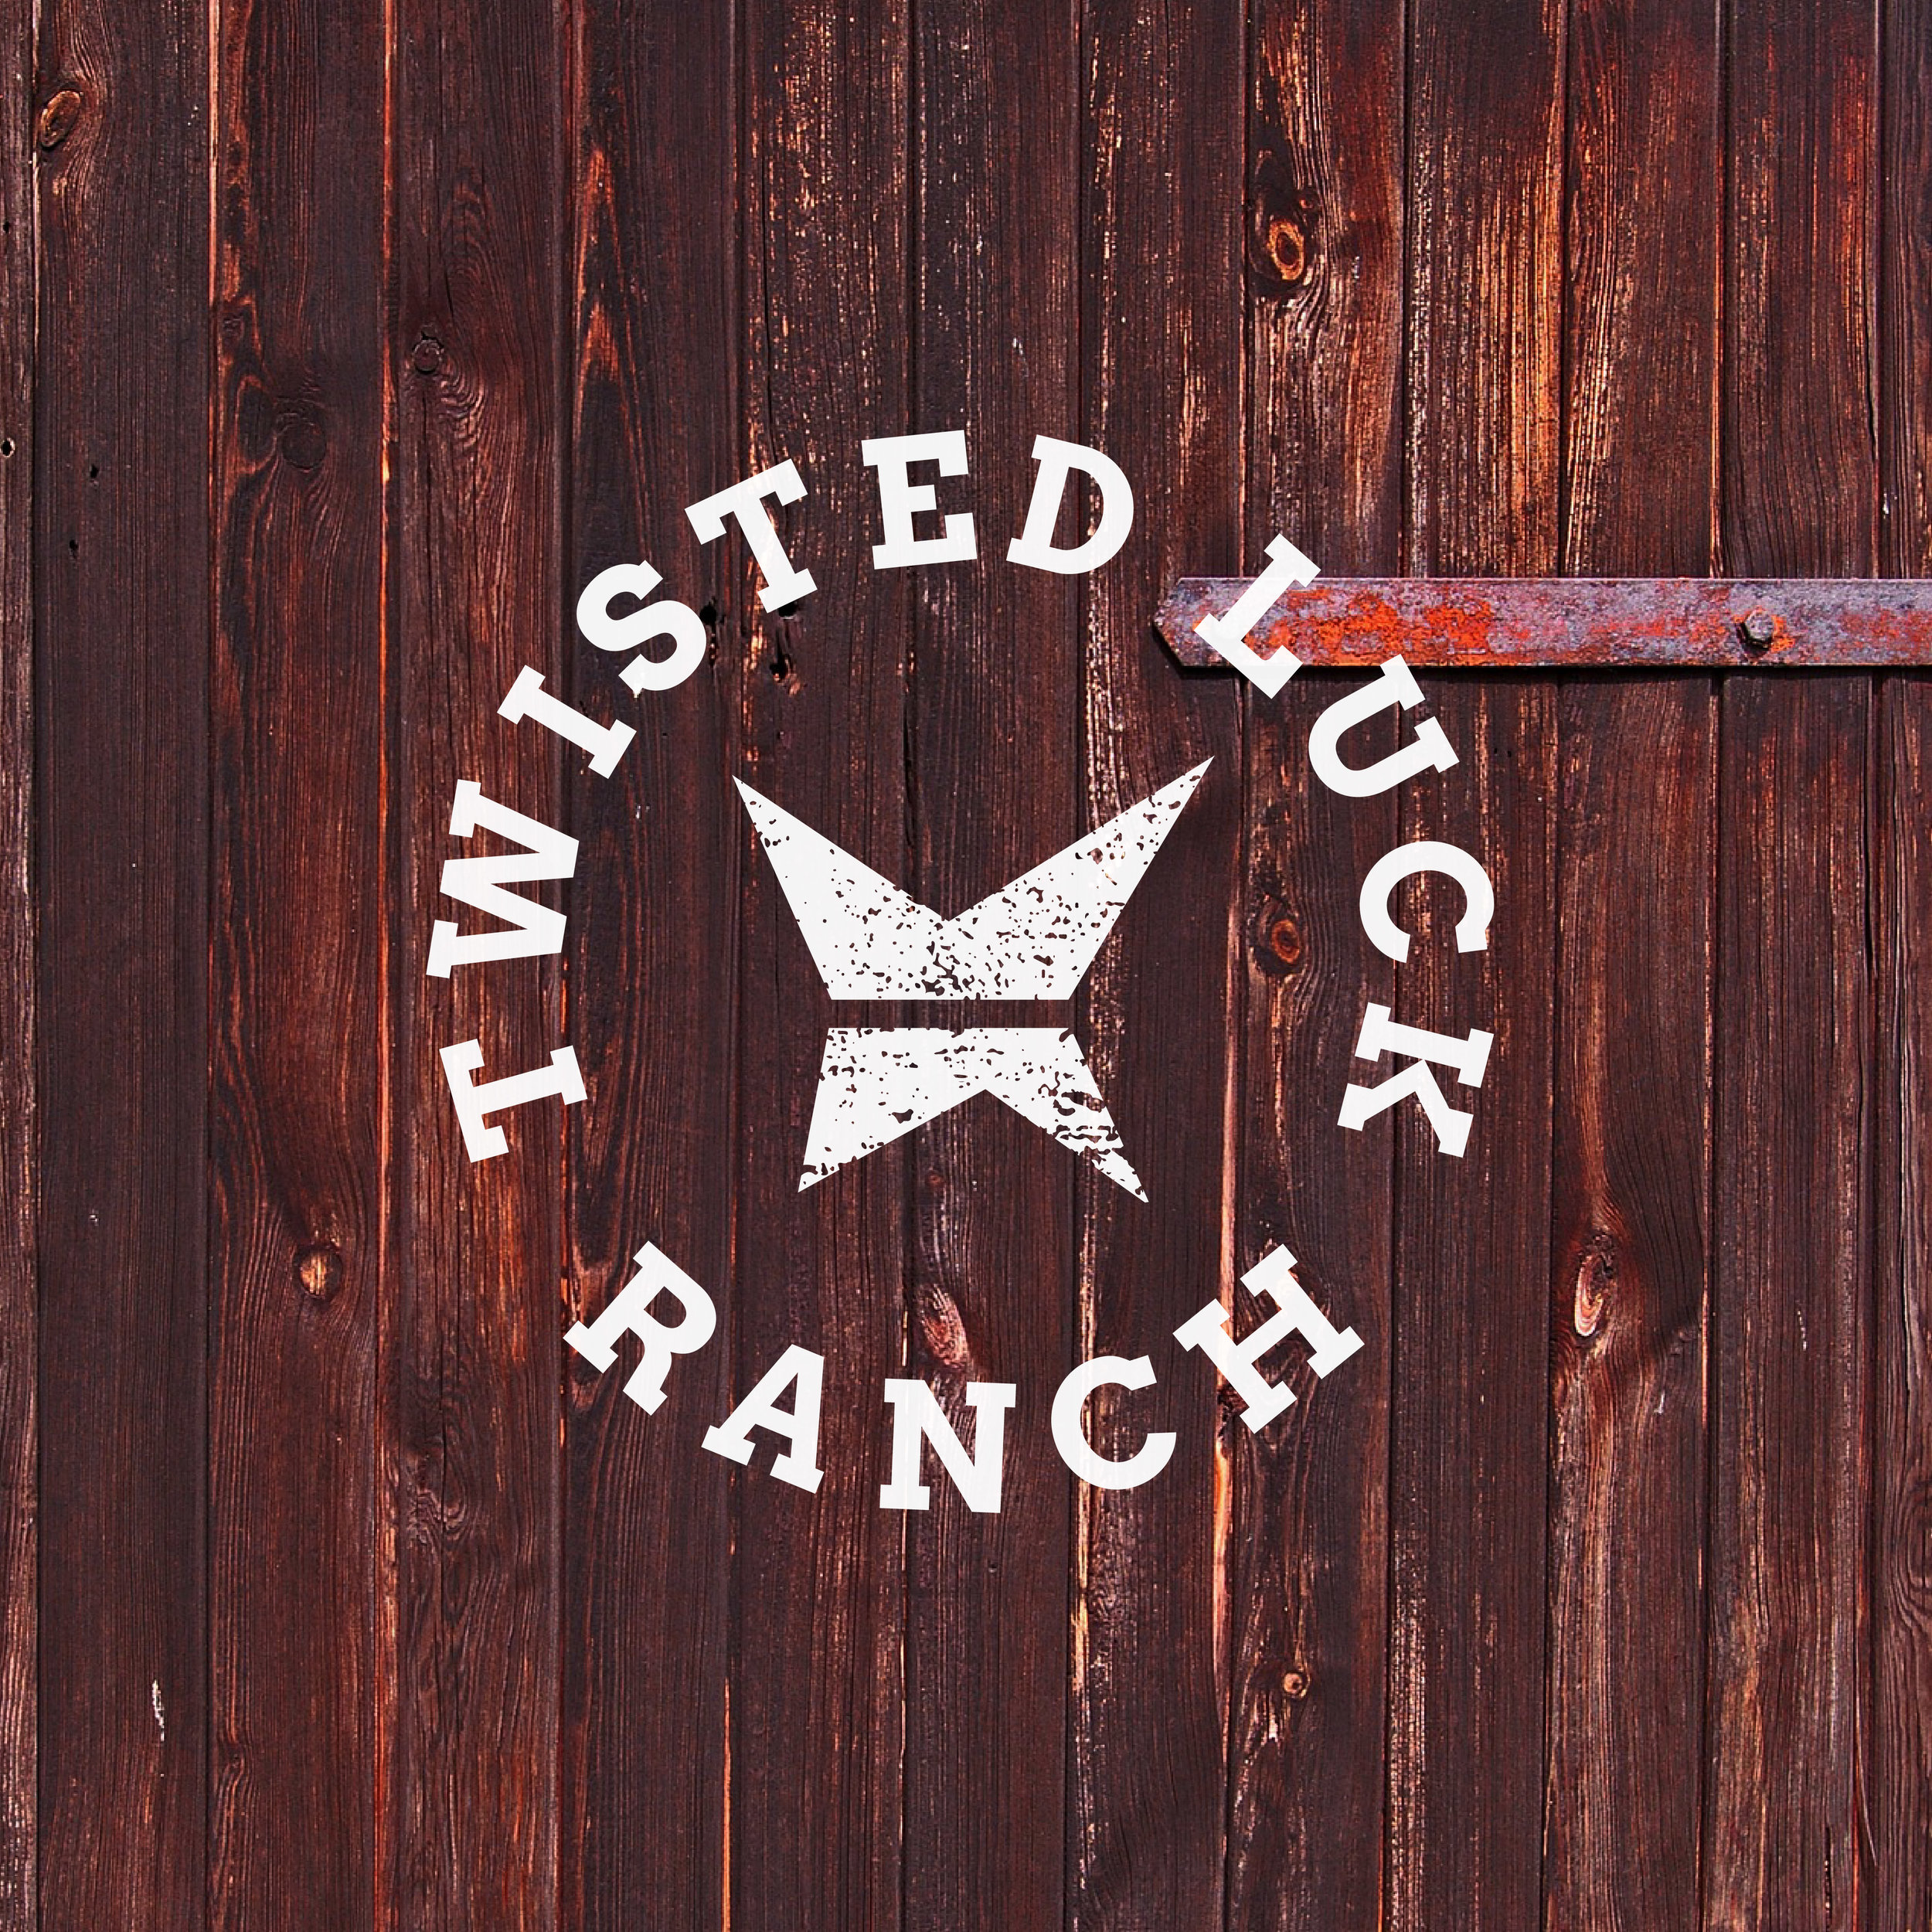 Twisted Luck is a horse boarding ranch located in rural Wisconsin. Through a combination of slab-serif text and an abstracted barbed wire form, this logo helped connect to a younger client base and helped the ranch stand out amongst its competition.